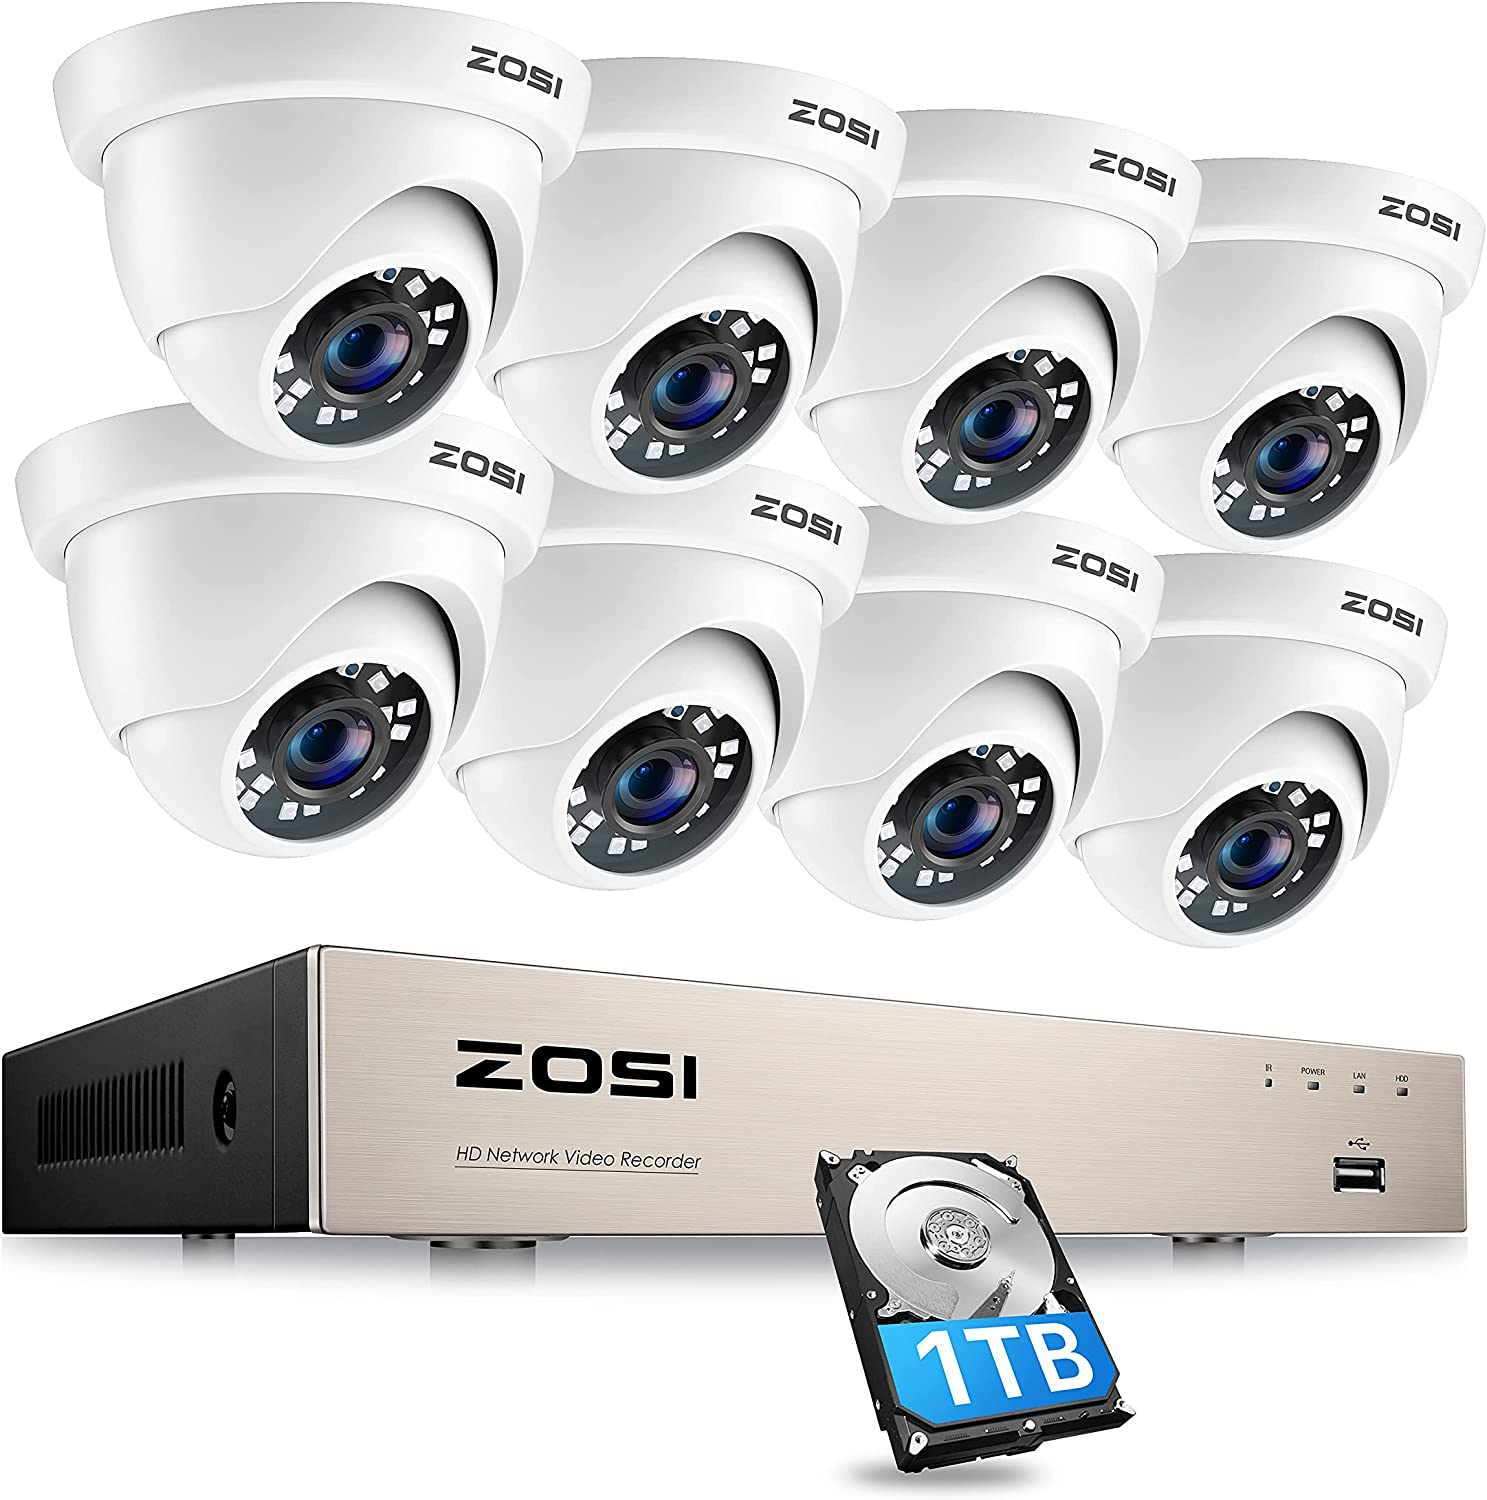 ZOSI 8CH PoE Home Security Camera Drive All Max 50% OFF items in the store H.2 Hard with 1TB System